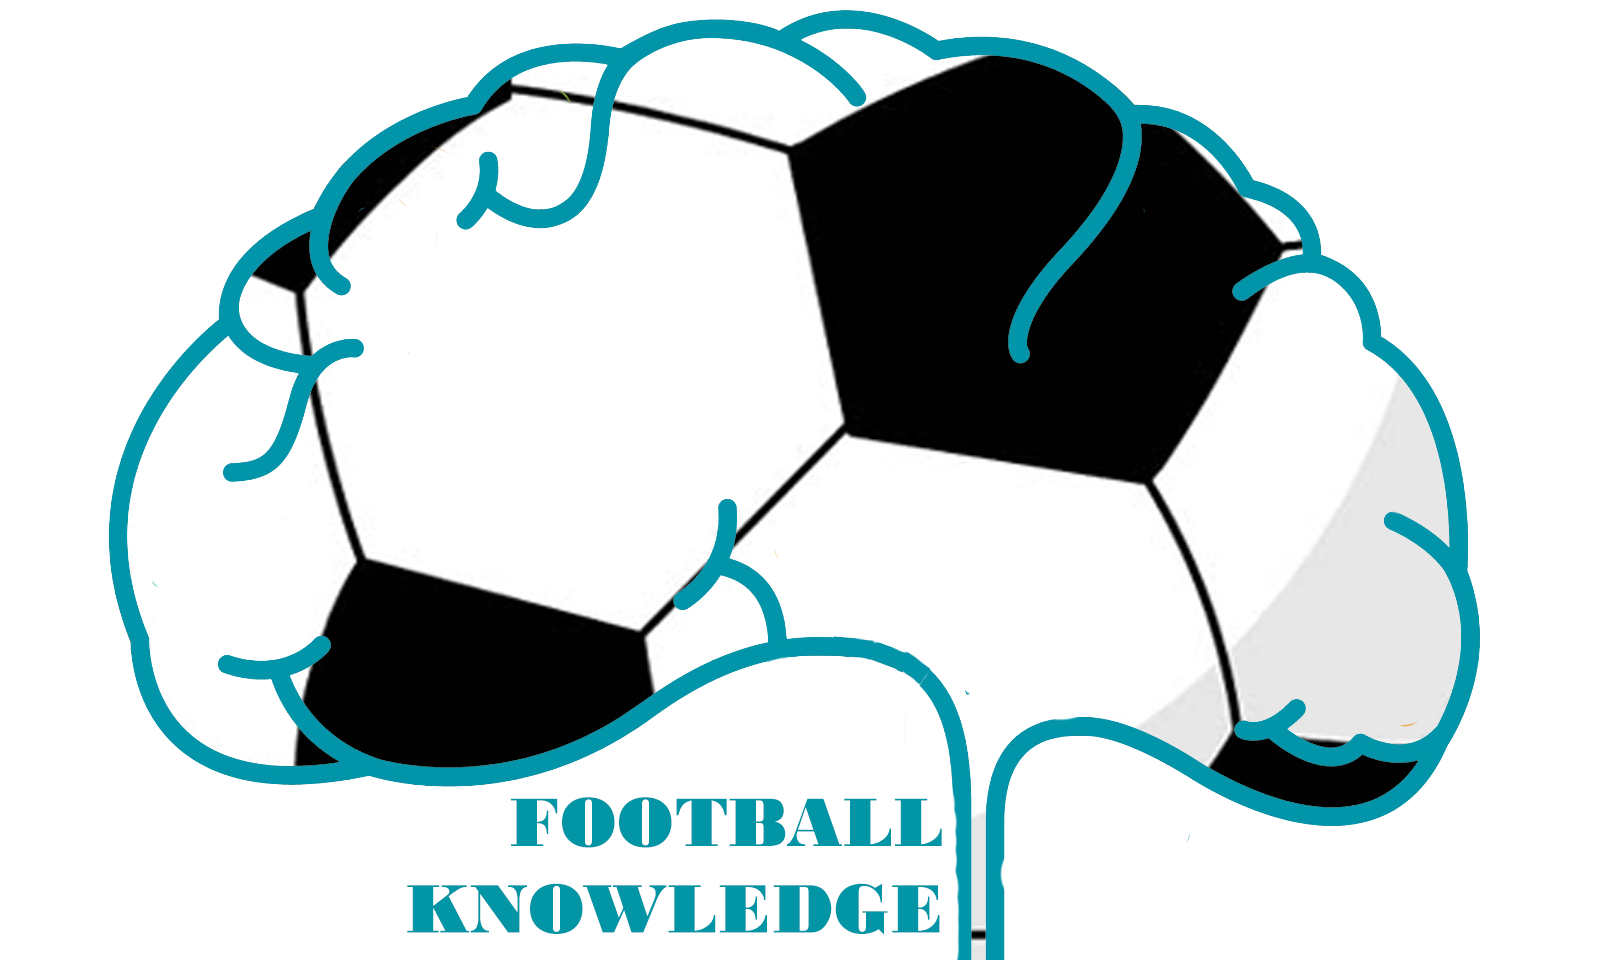 Football Knowledge #5.1: La numerologia nel calcio